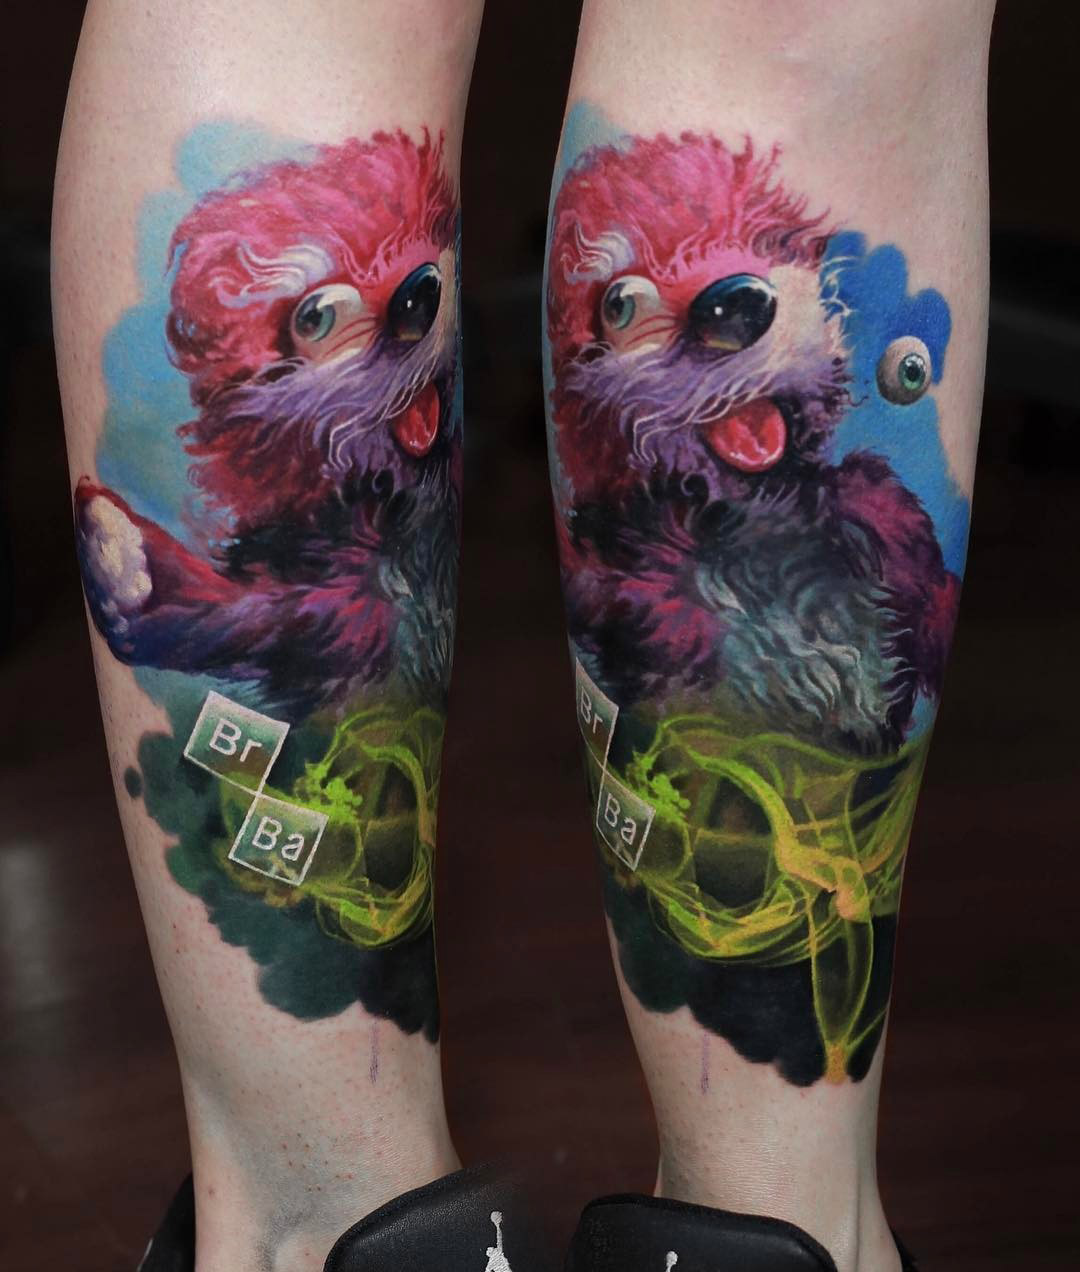 Pink Teddy Bear Tattoo - Breaking Bad